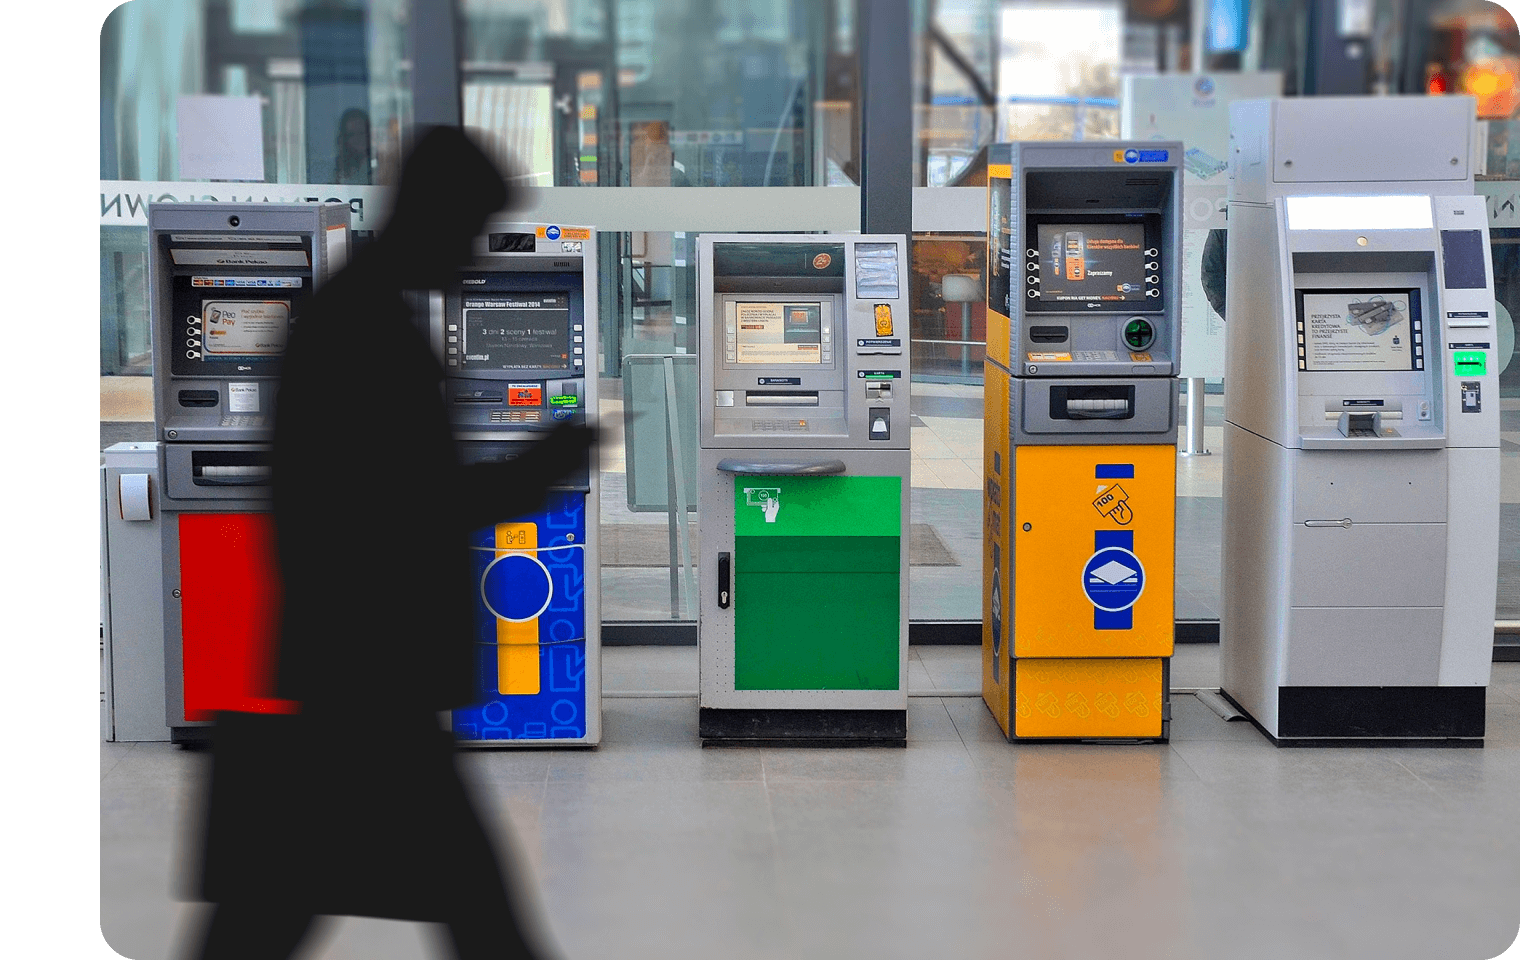 atms-image-3